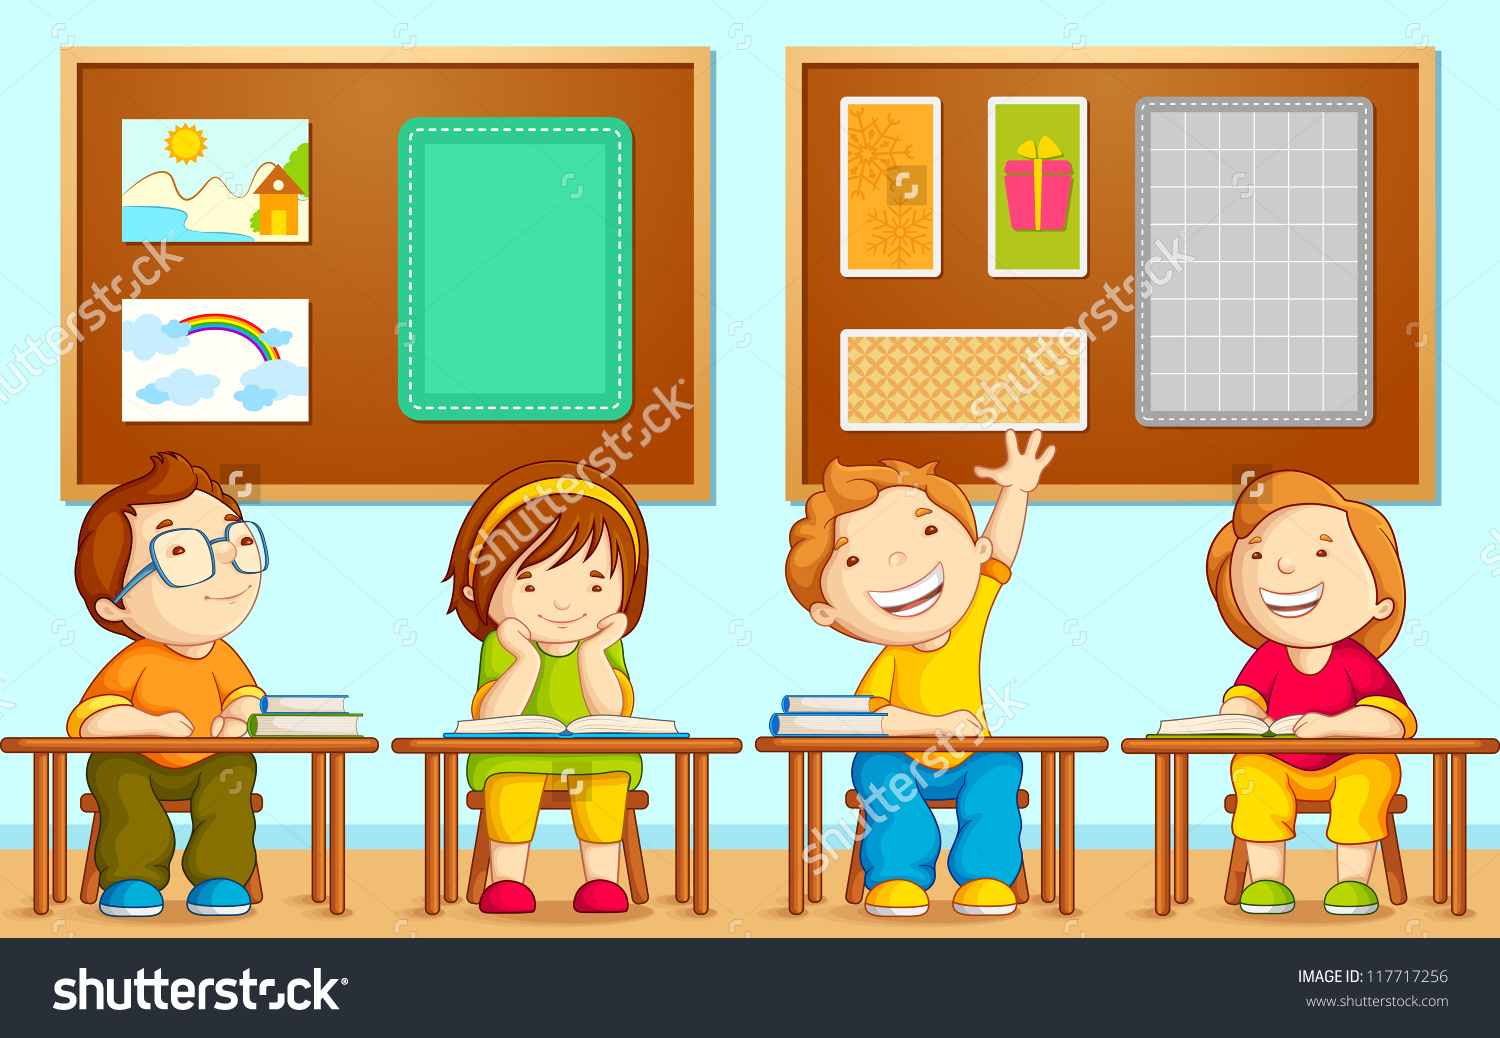 Vector Illustration Children Sitting On Table Stock Vector.